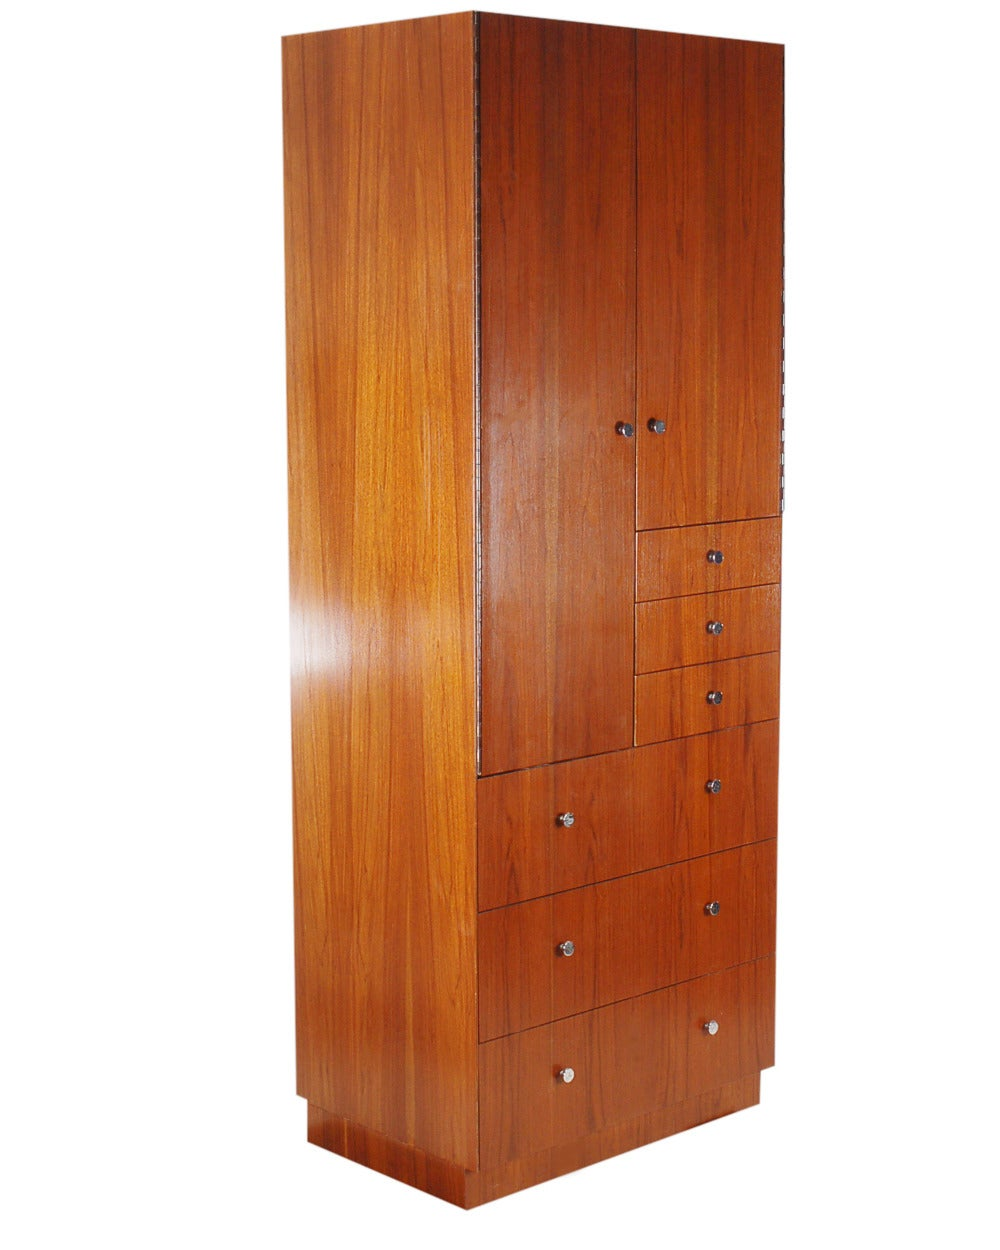 Tall Mid Century Modern Cabinet in Walnut with Chrome